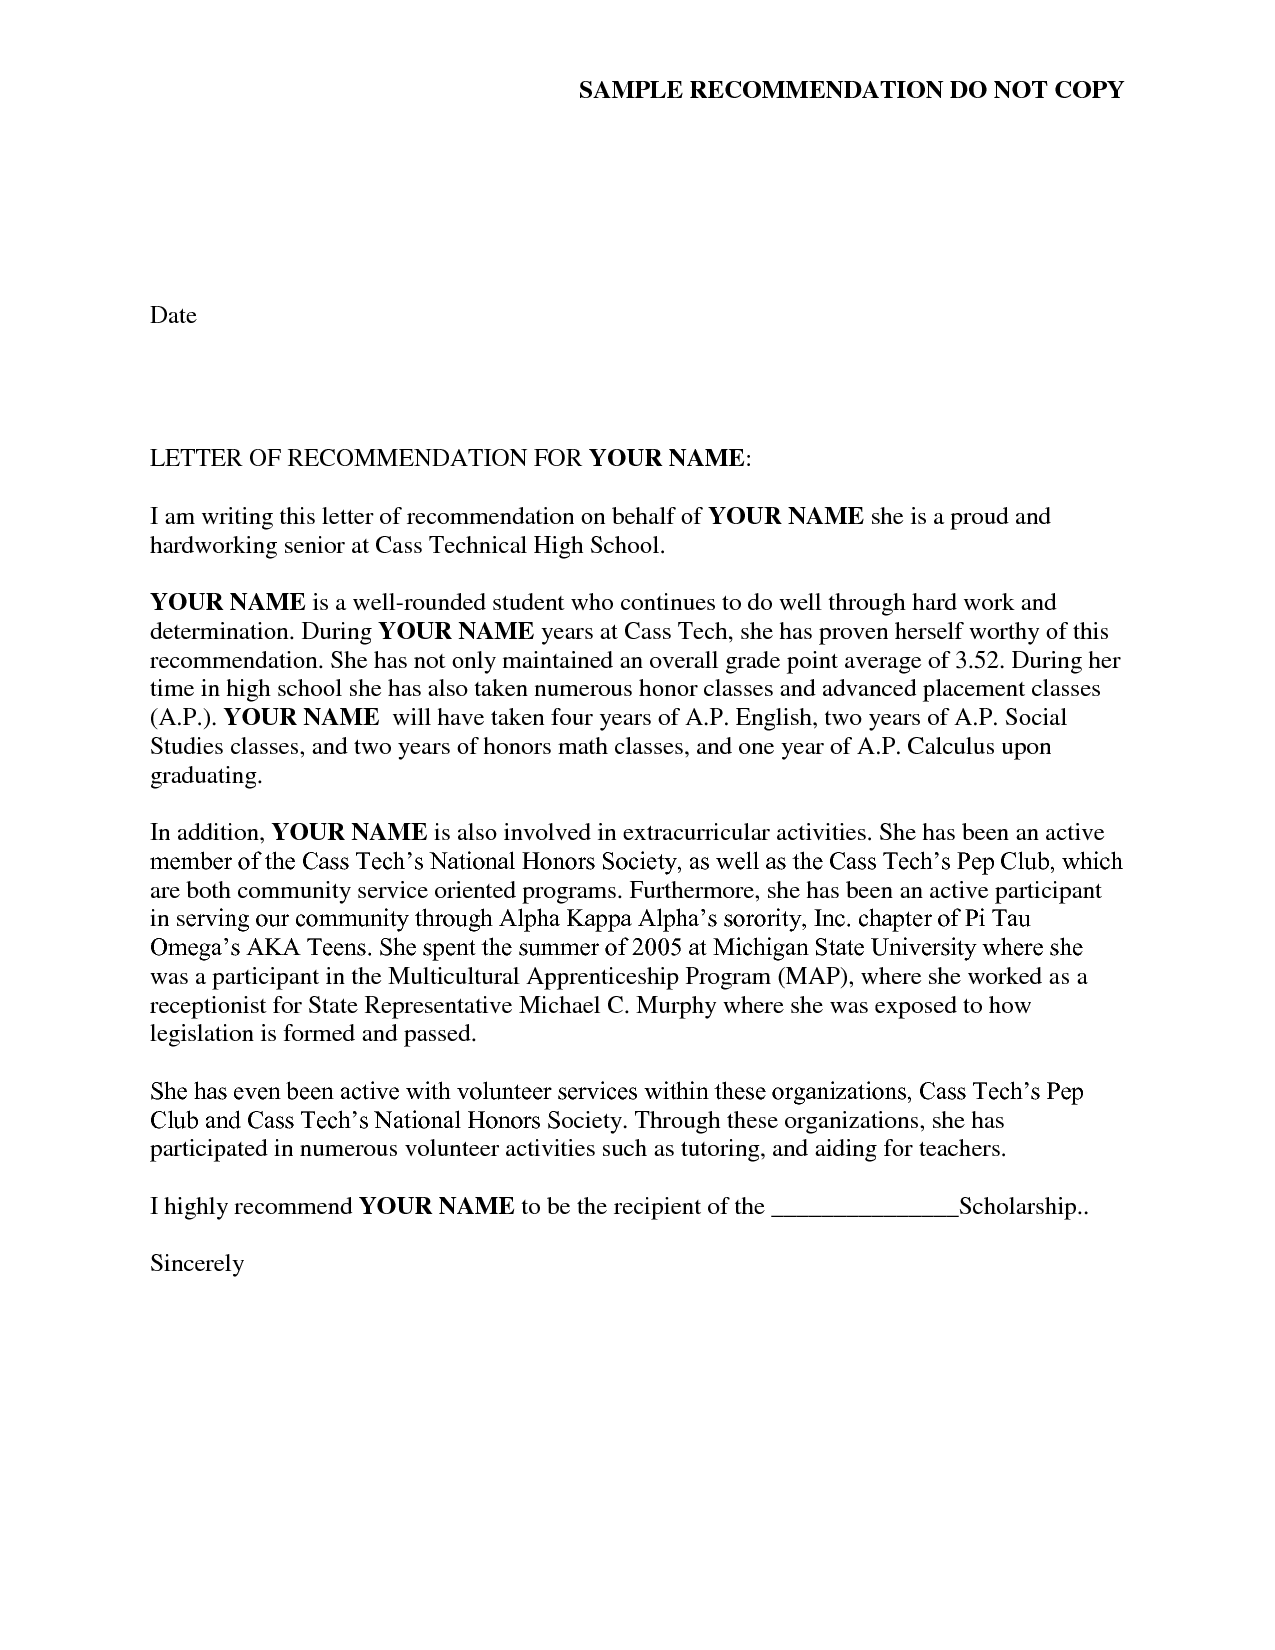 Reference letter of recommendation sample sample alpha kappa reference letter of recommendation sample sample alpha kappa alpha recommendation letter mitanshu Choice Image